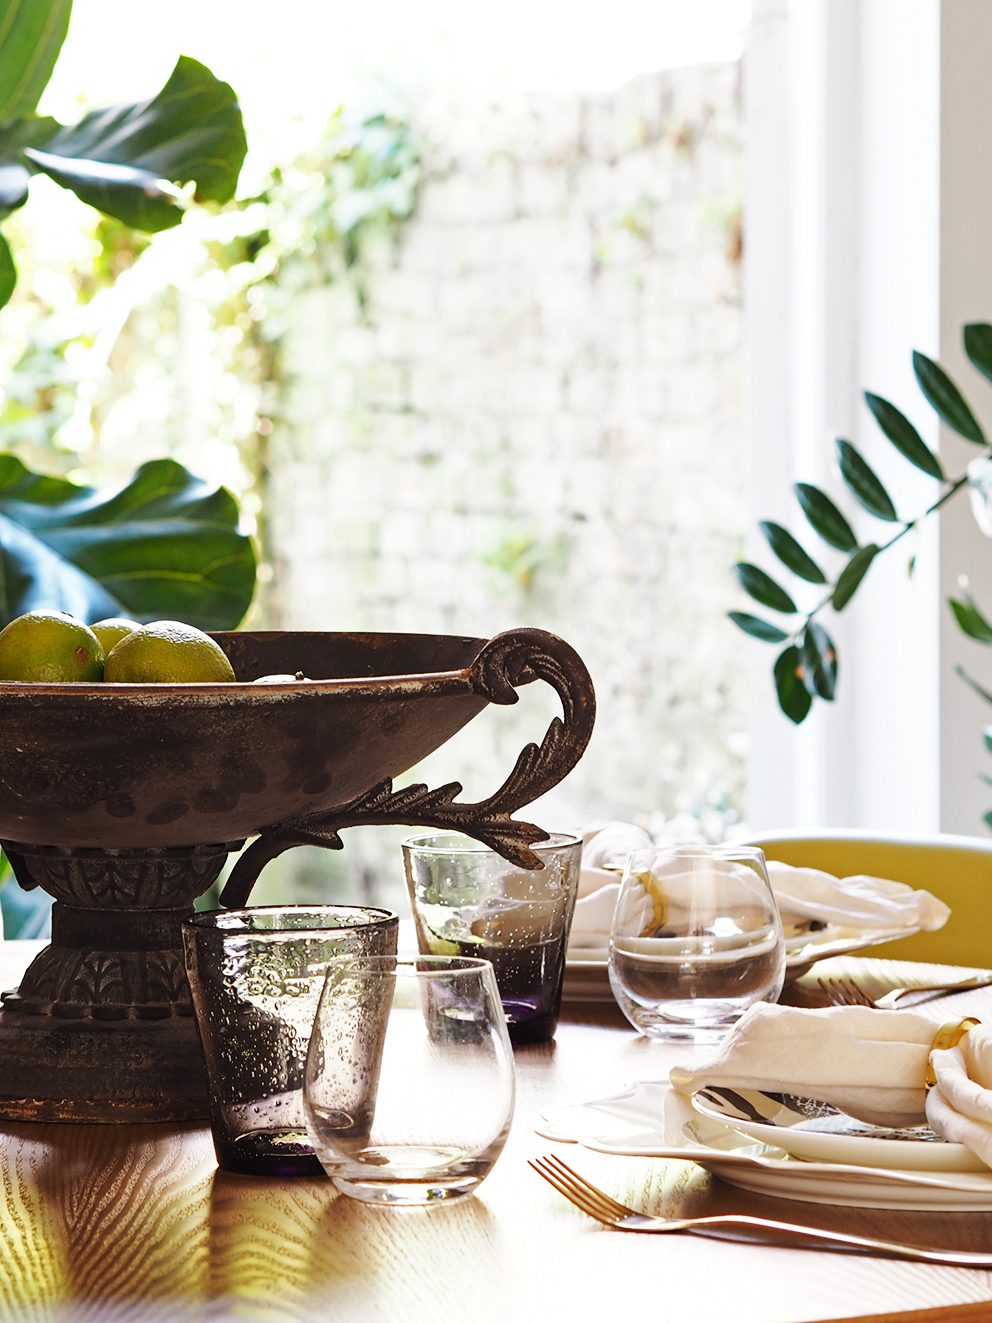 My Summer Dining Room - French For Pineapple Blog - table setting with ornate footed bowl of limes, stemless wine glasses and tinted tumblers